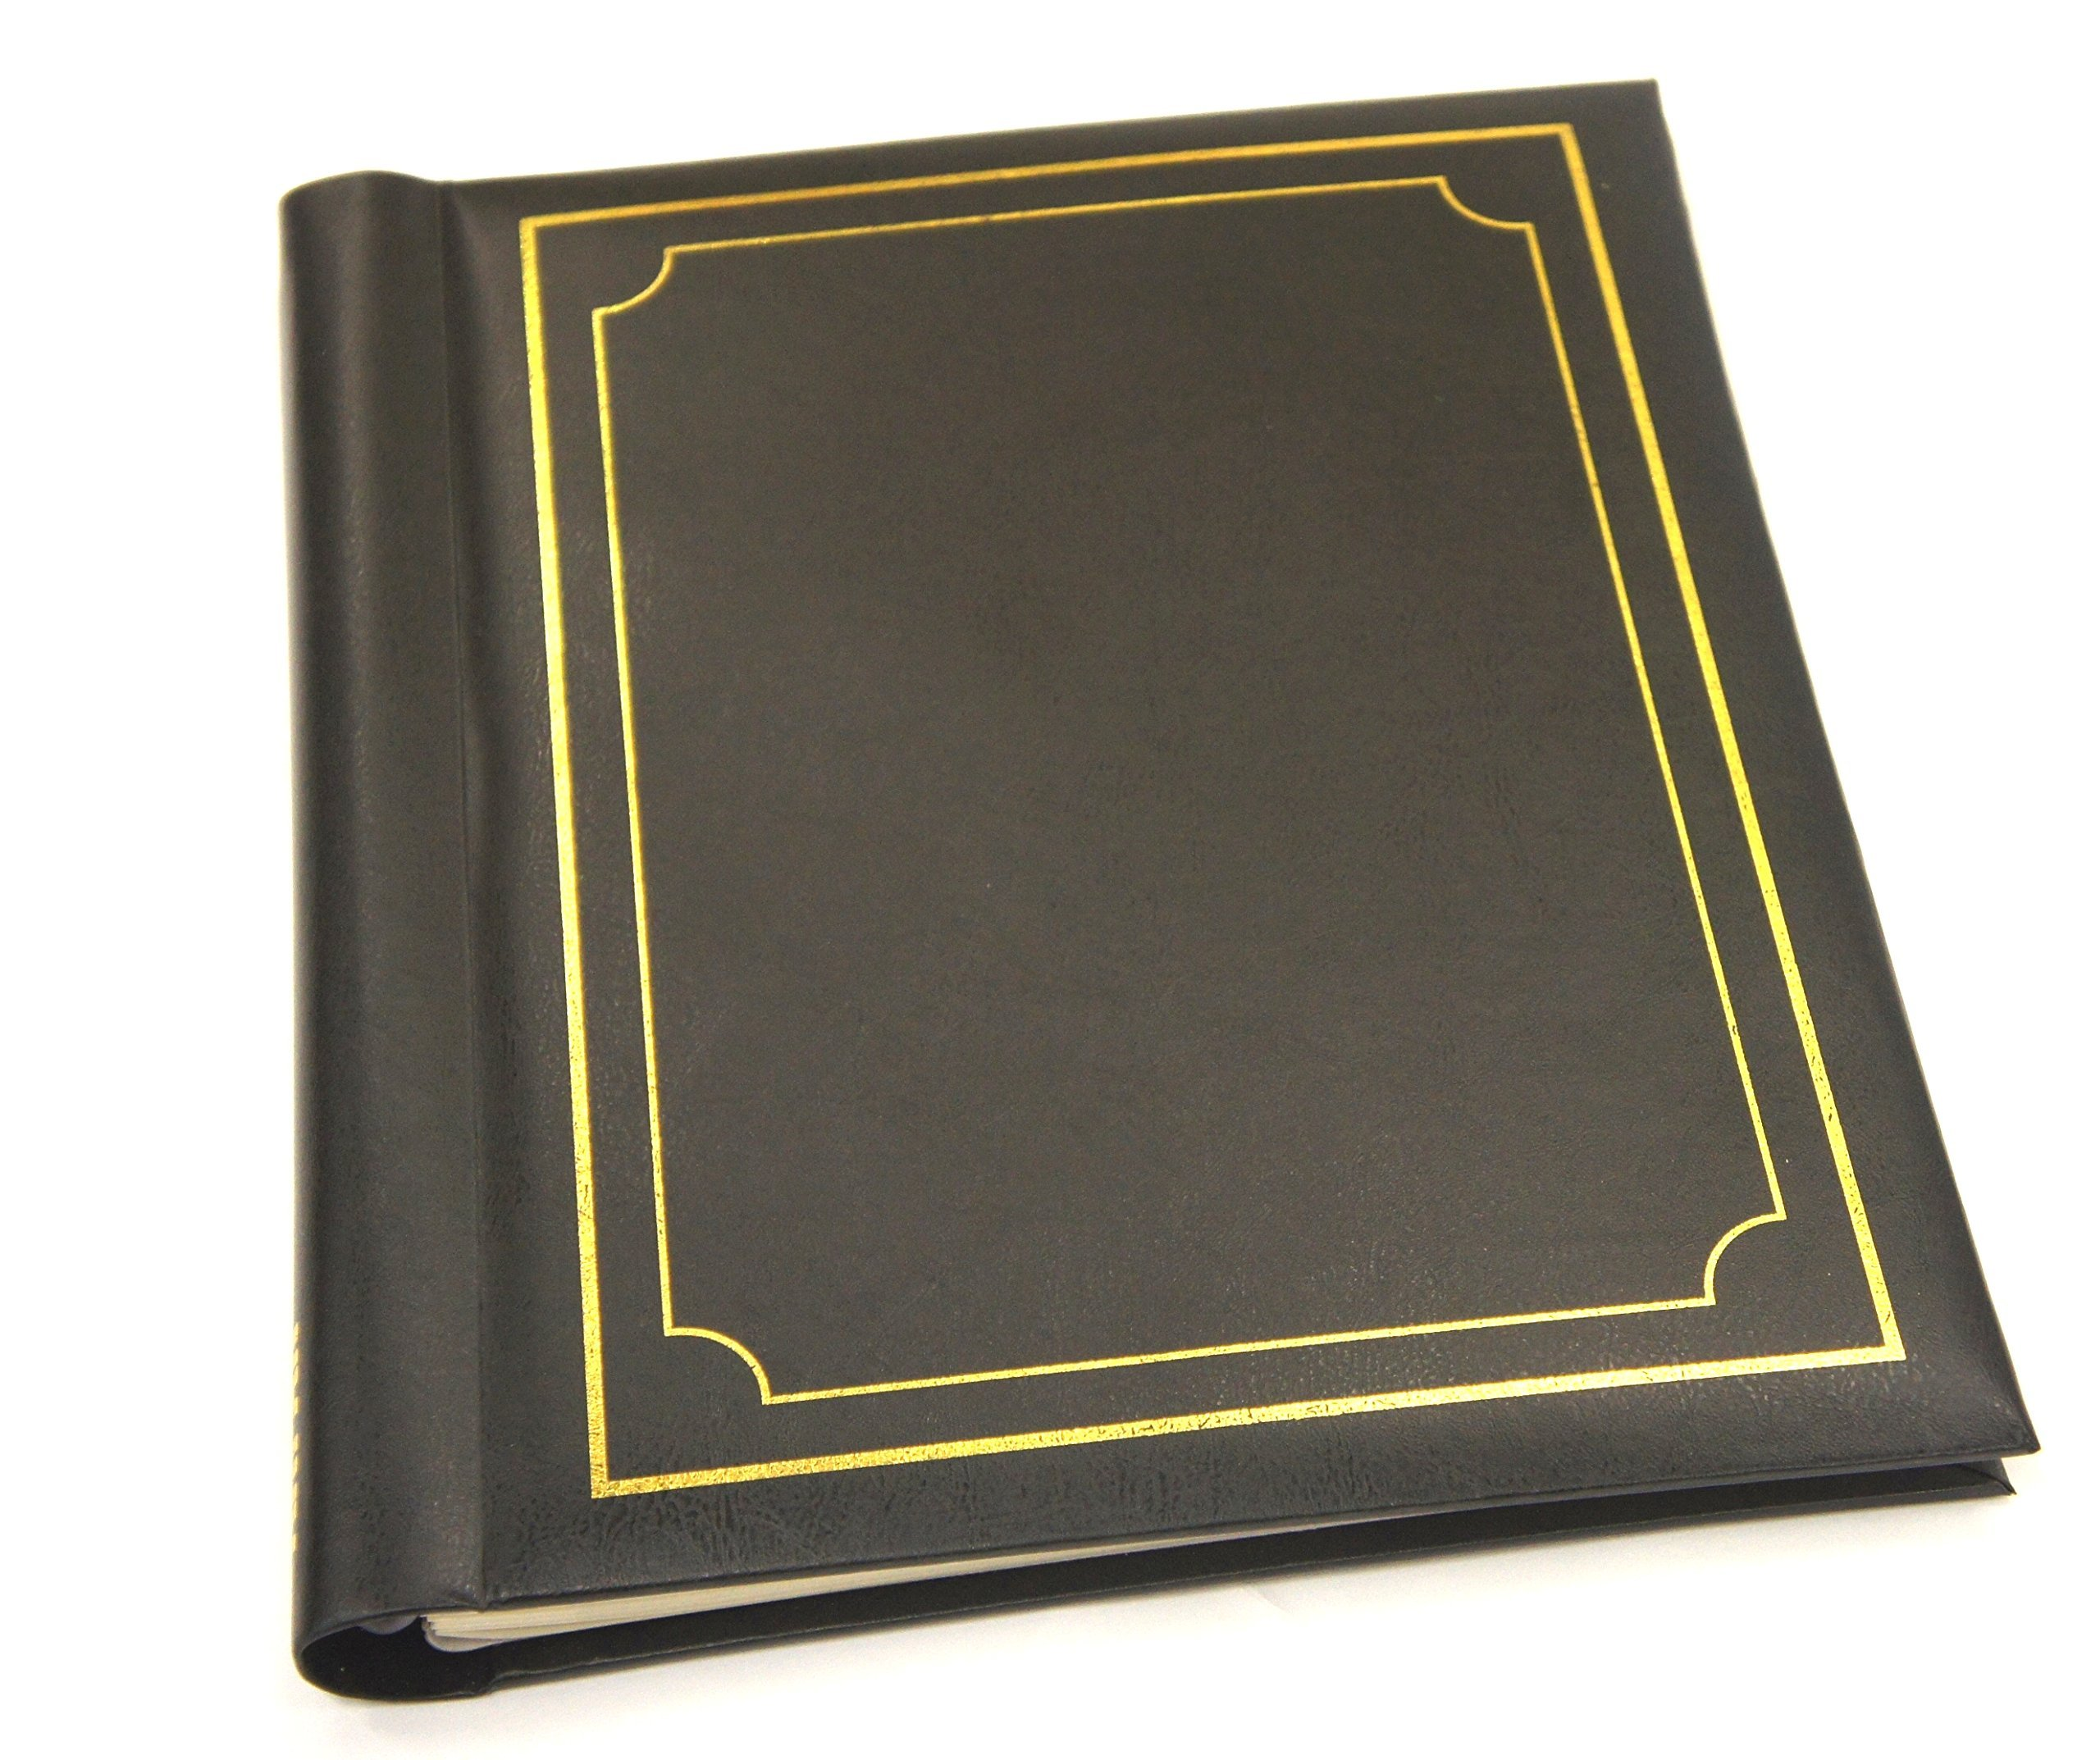 ARPAN Deluxe Gold Stamp Cover Large 20 Sheet Self Adhesive Magnetic Page Photo Album - Black